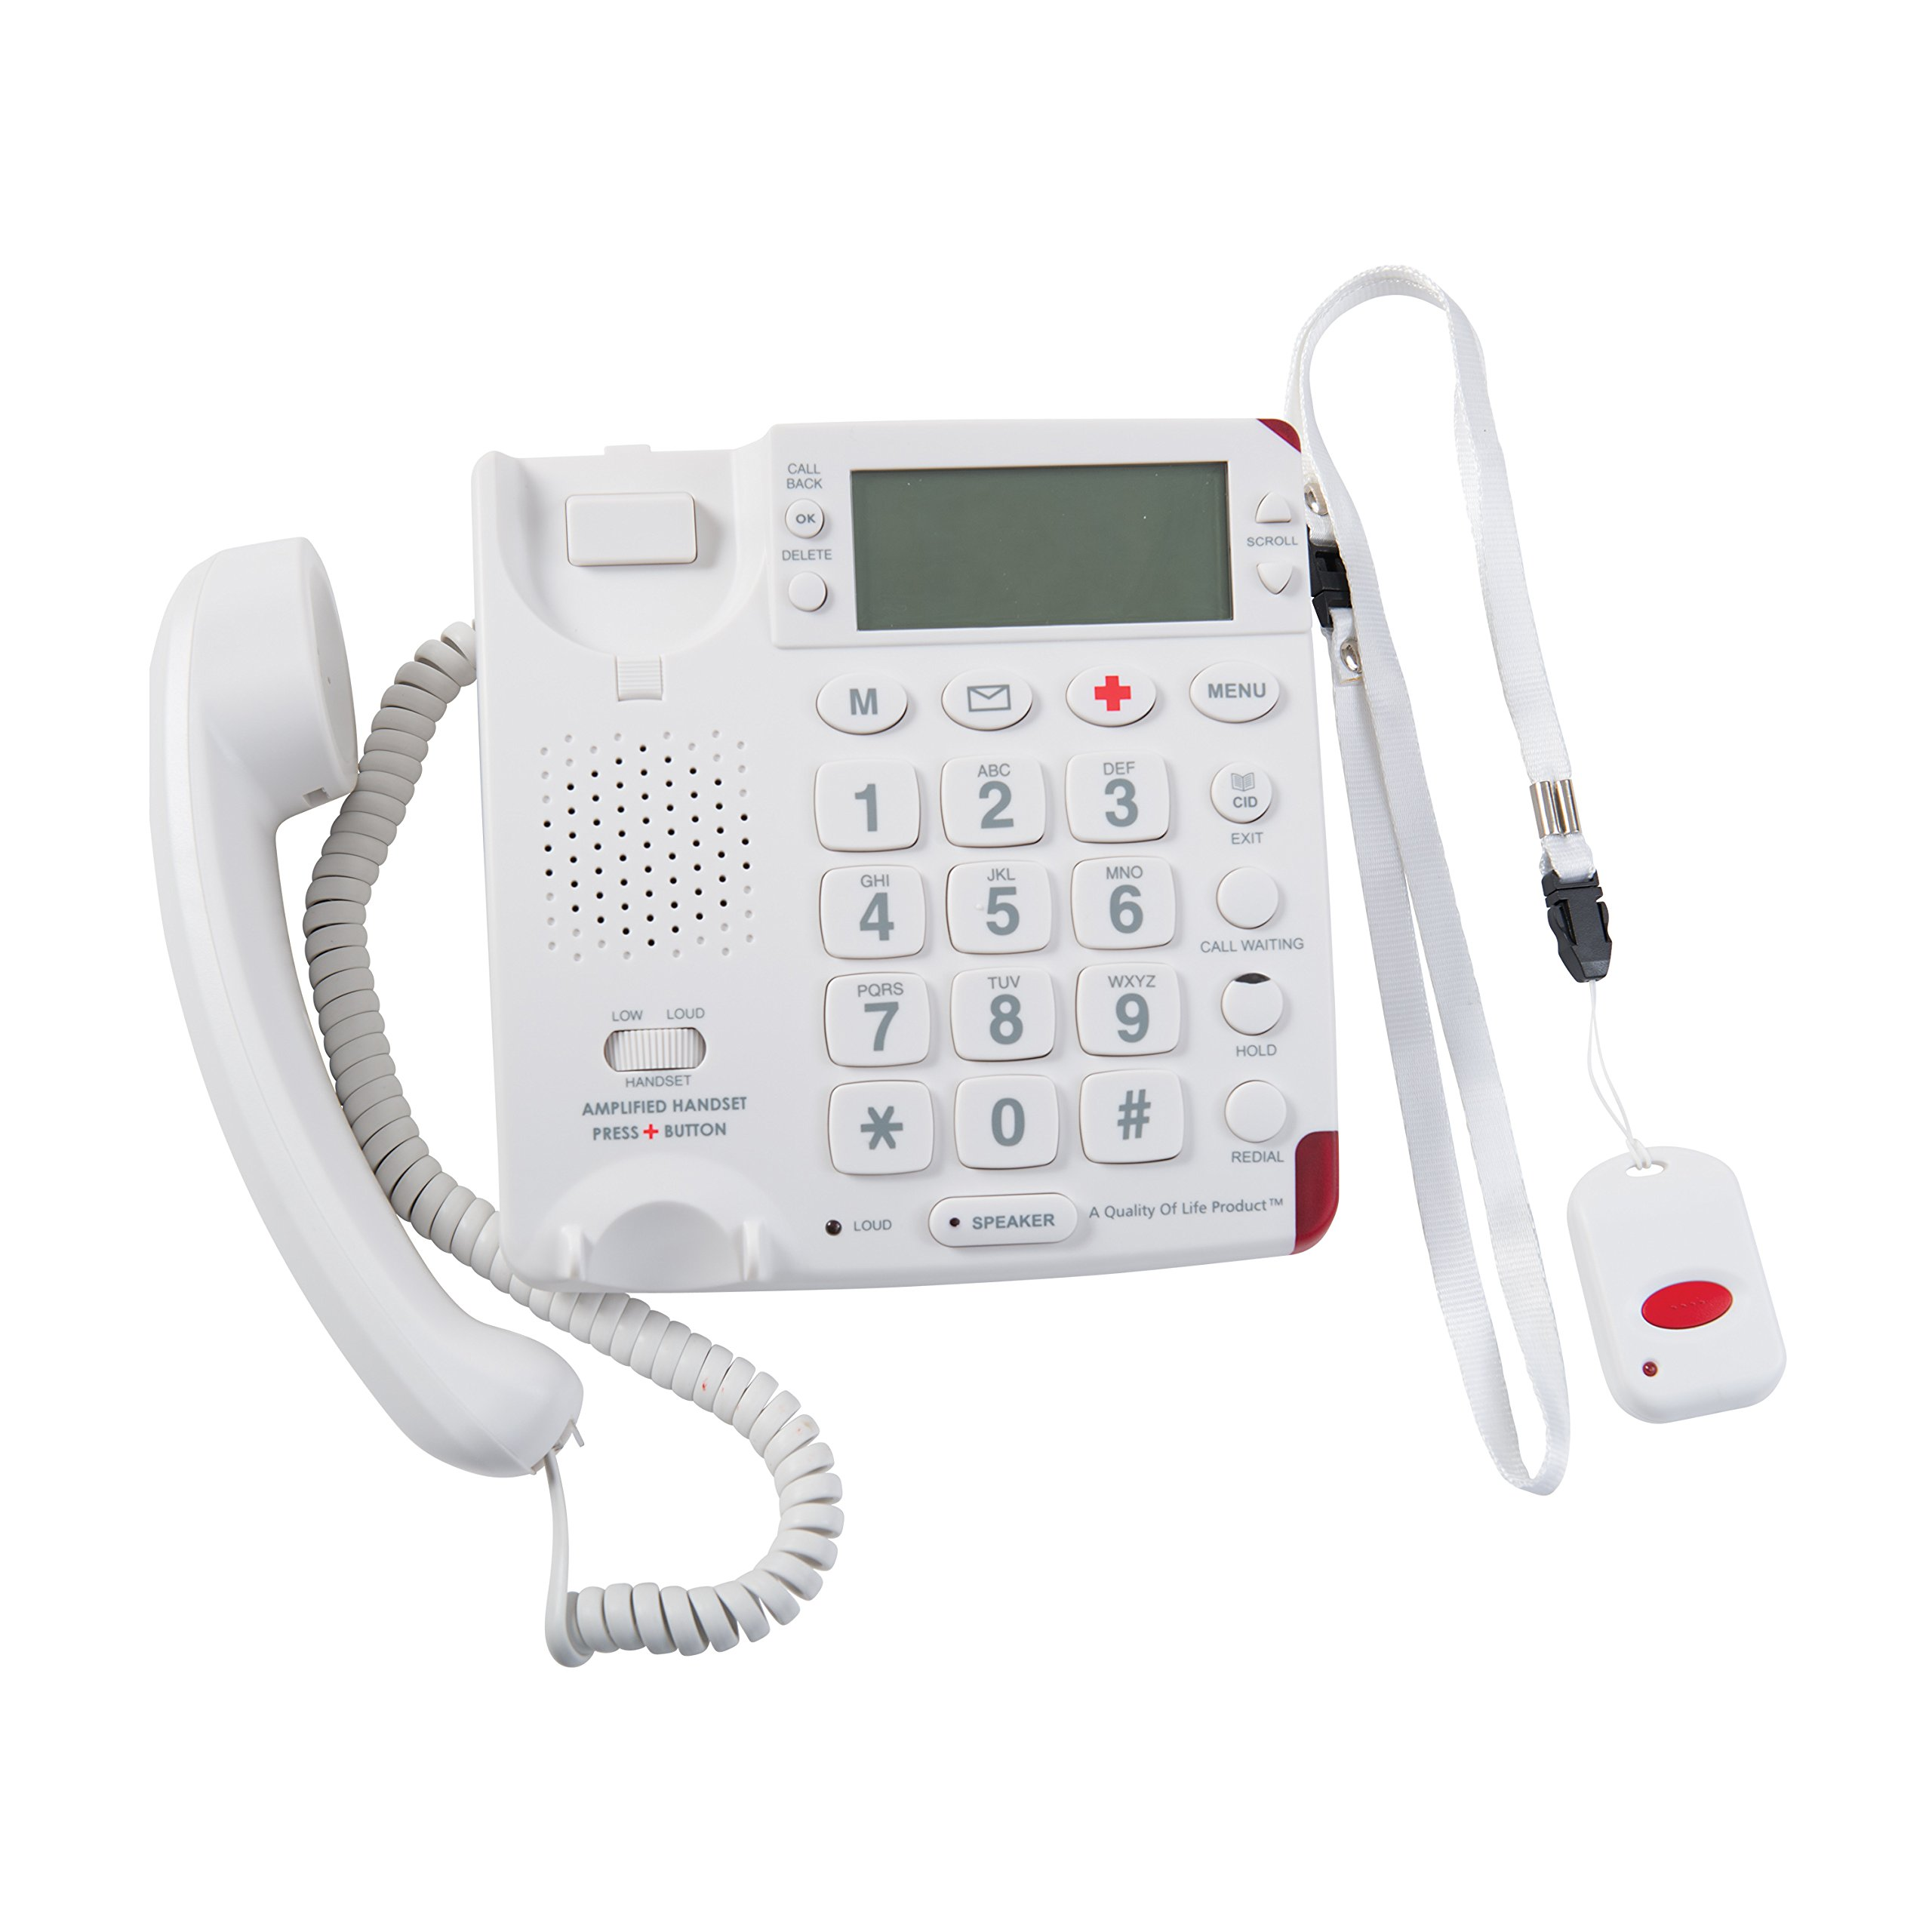 Telemergency Emergency Alert Telephone with Wireless Pendant and No Monthly Fees